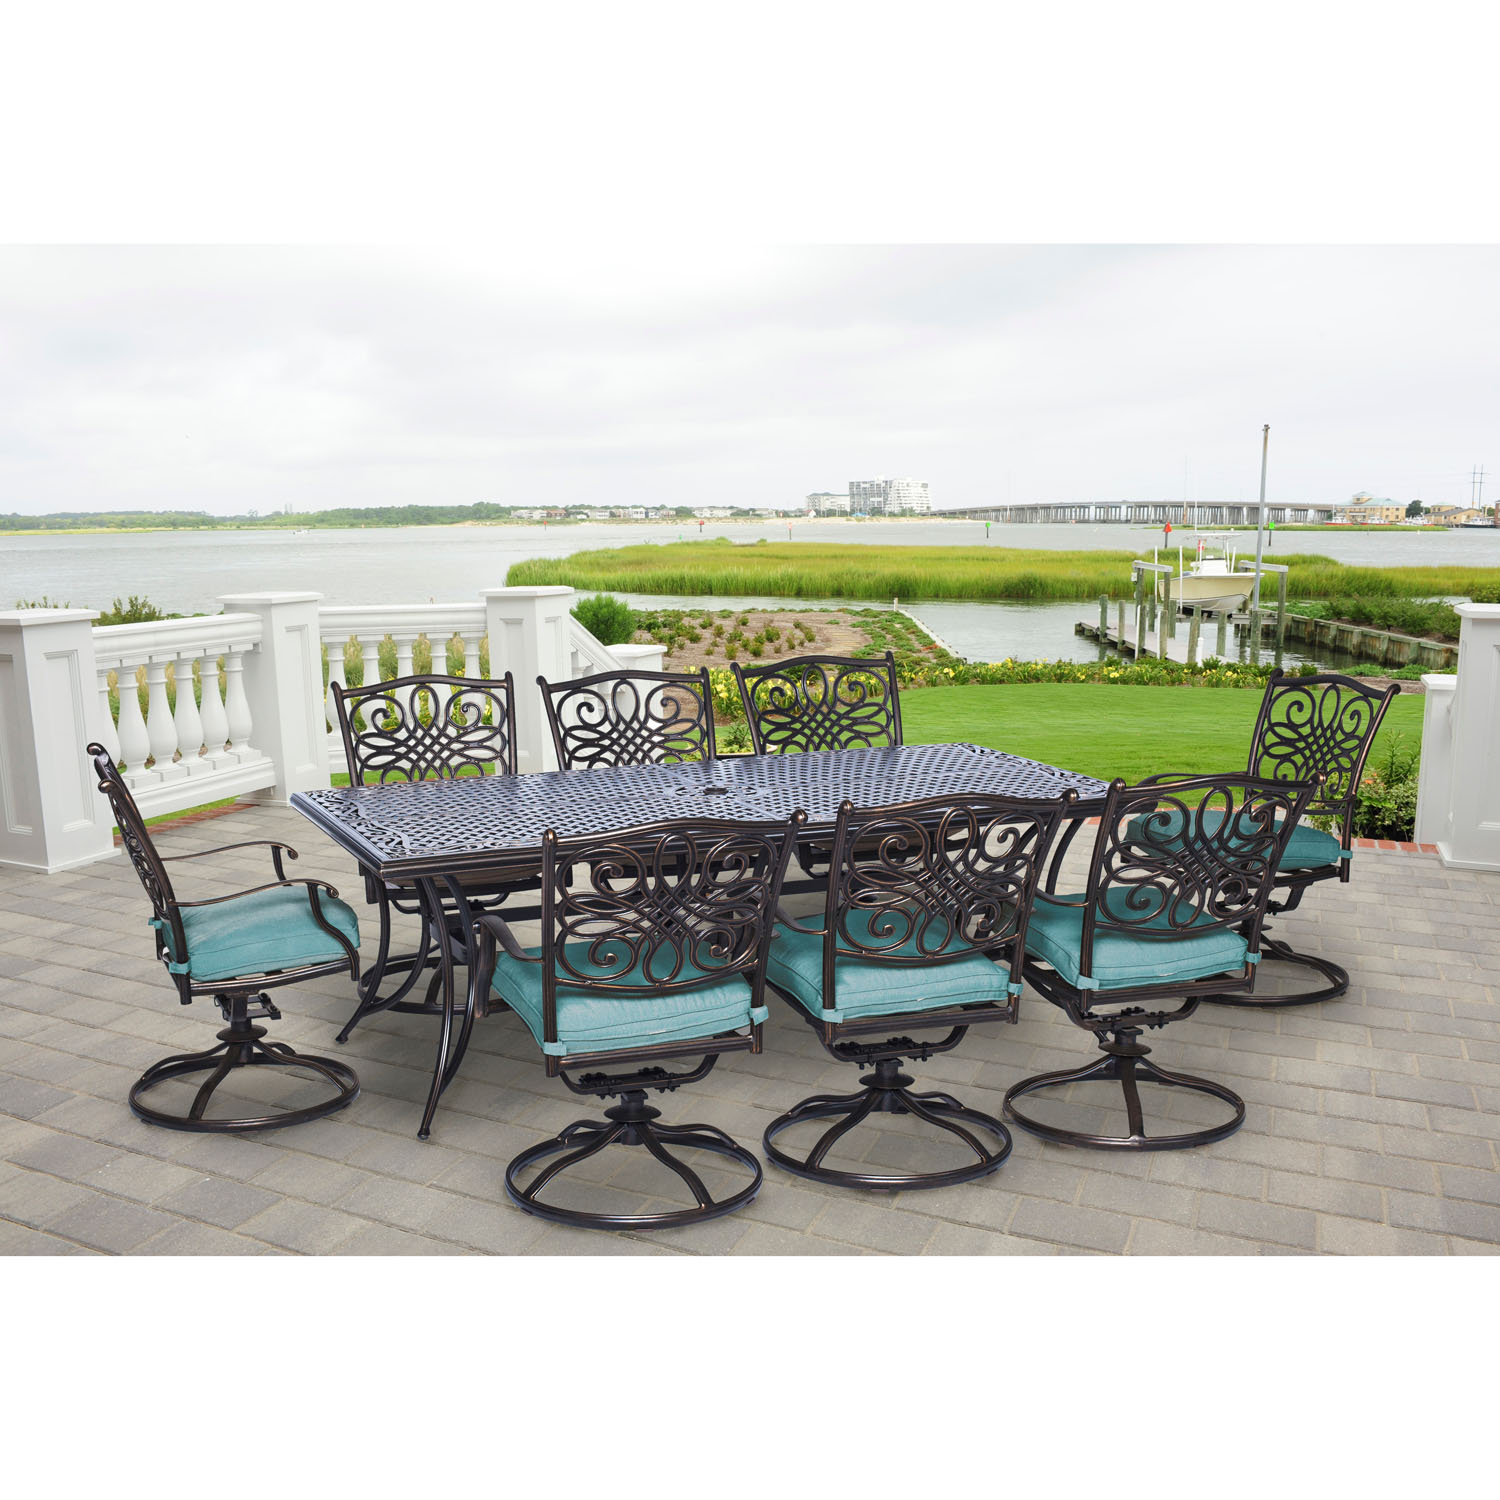 Hanover Traditions 9-Piece Cast-Top Outdoor Dining Set with 8 Swivel Rockers